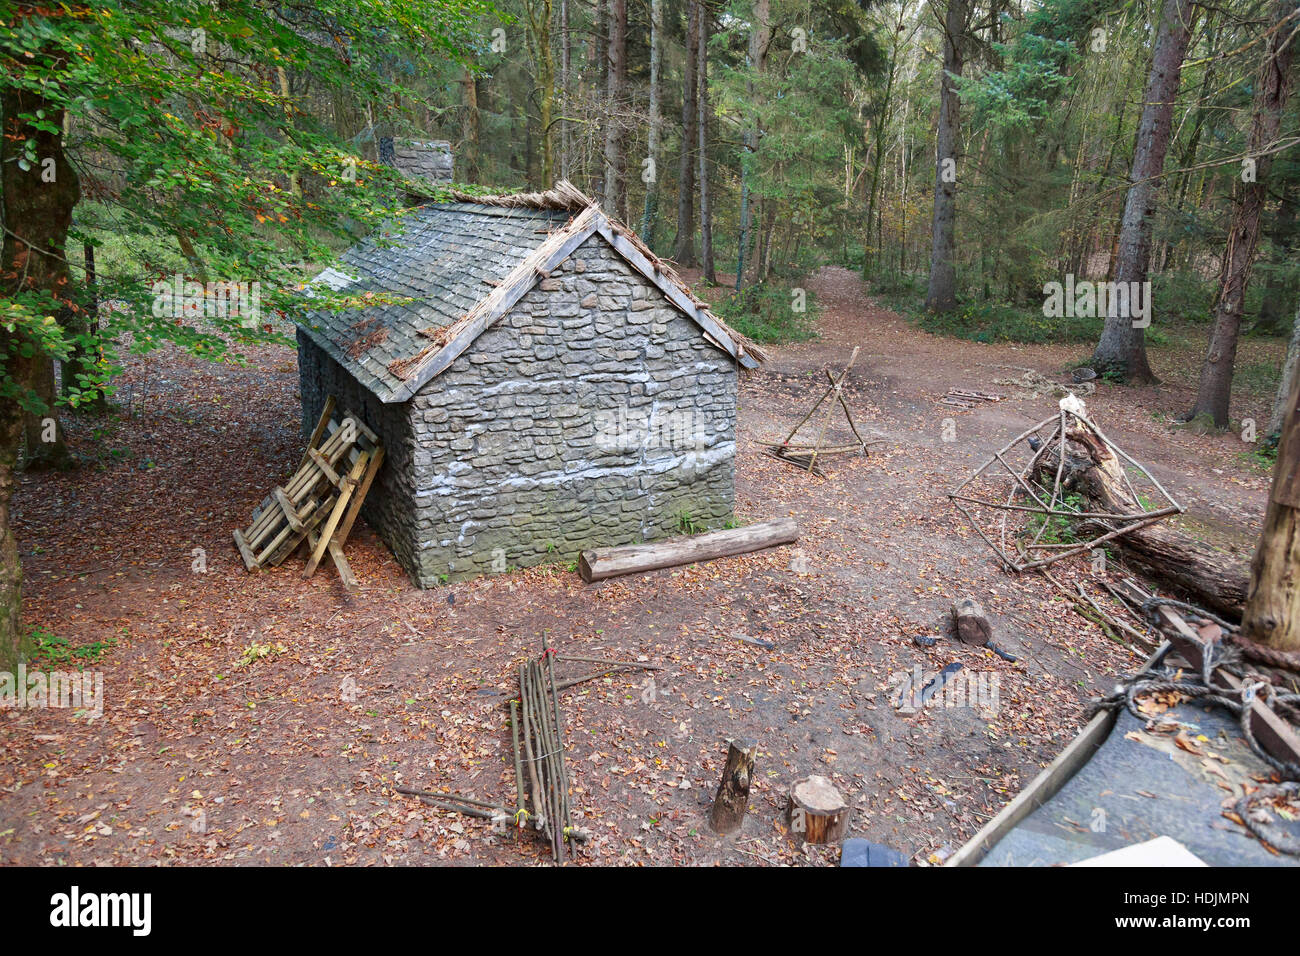 woodland film set with cottage and props - Stock Image